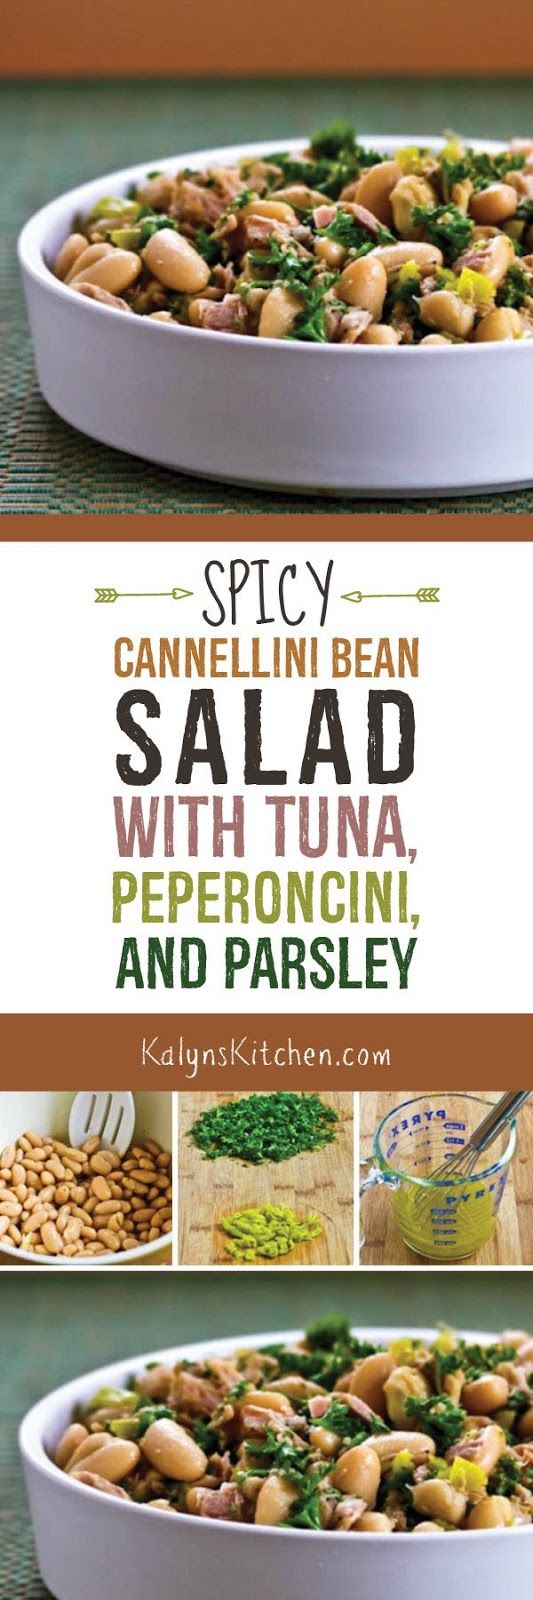 I used peperoncini to add extra flavor to this Spicy Cannellini Bean Salad with Tuna, Peperoncini, and Parsley, and this salad is perfect for lunch at home or to take to work! [found on KalynsKitchen.com]